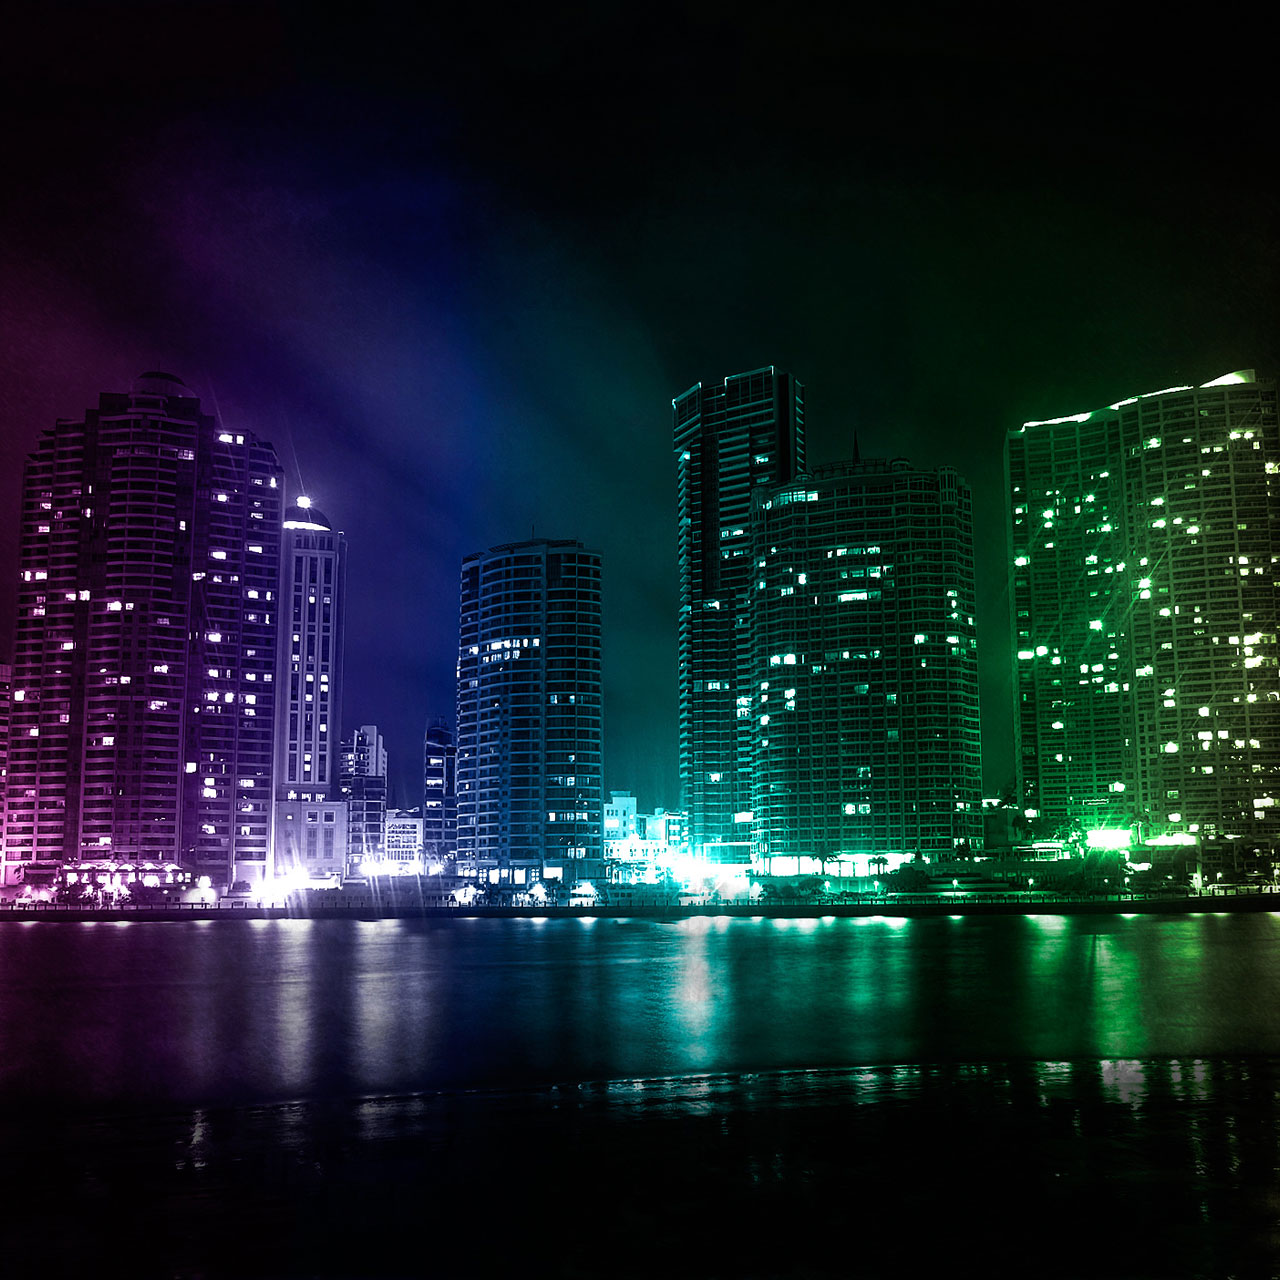 http://2.bp.blogspot.com/-cwo8uk02eZ8/T_yAS4kFoFI/AAAAAAAAKMc/KjooZ63NRiU/s1600/colorful-city-wallpaper-p46_1280x1280.jpg